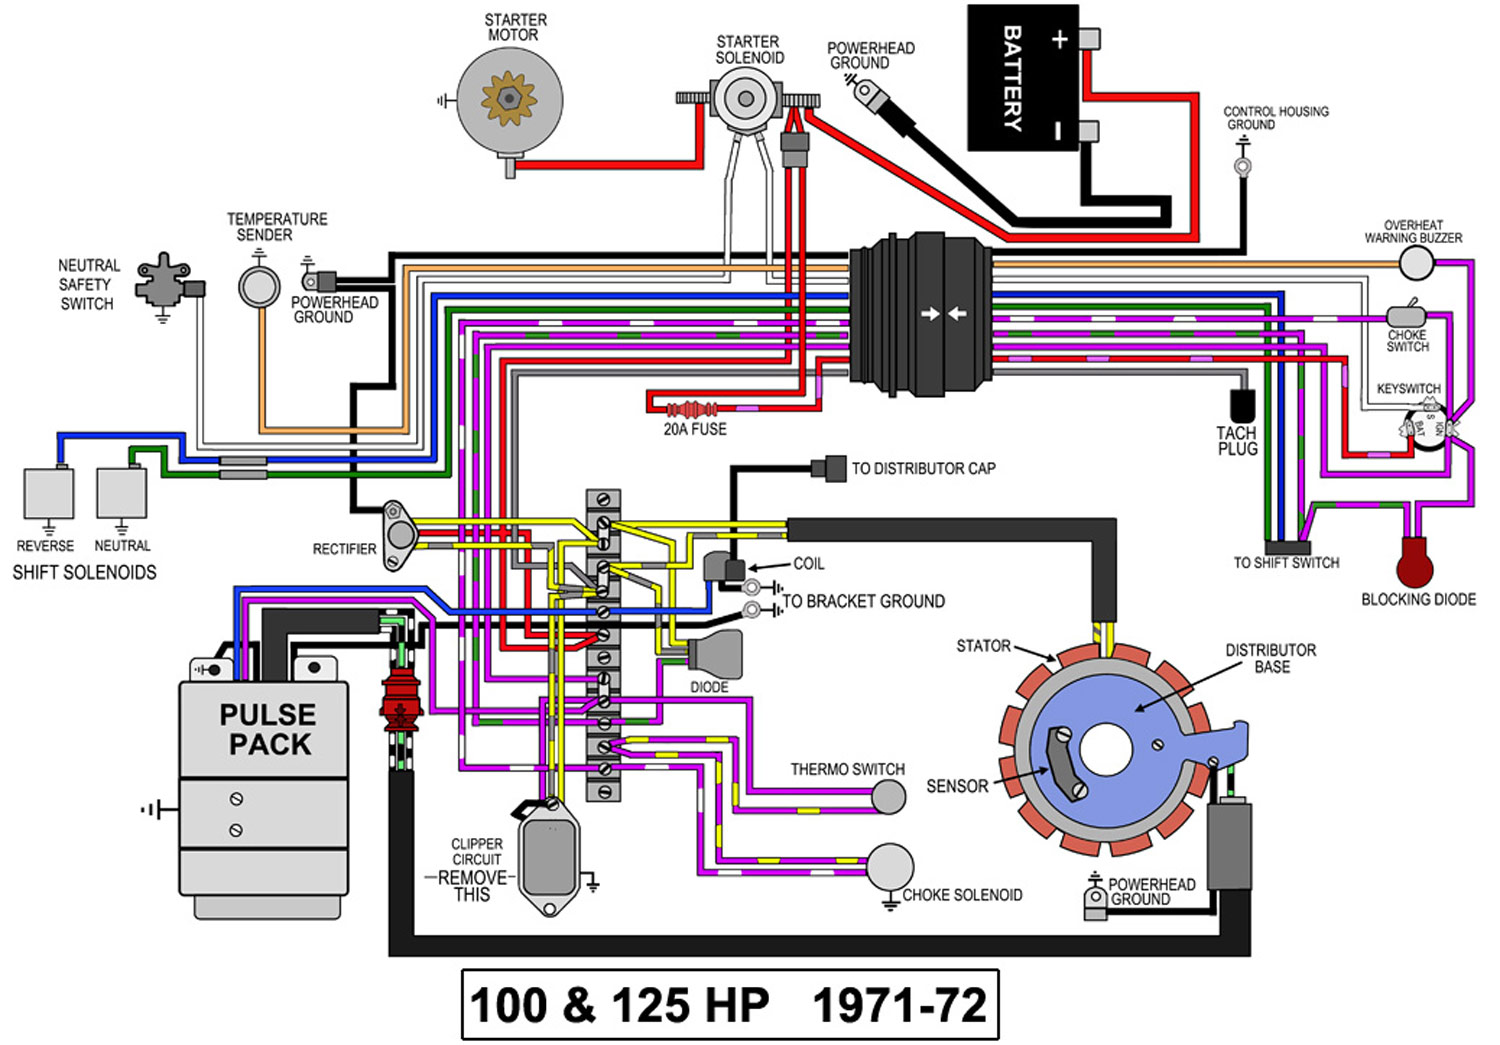 wiring diagram in addition johnson outboard starter solenoid wiring wiring diagram today [ 1500 x 1045 Pixel ]